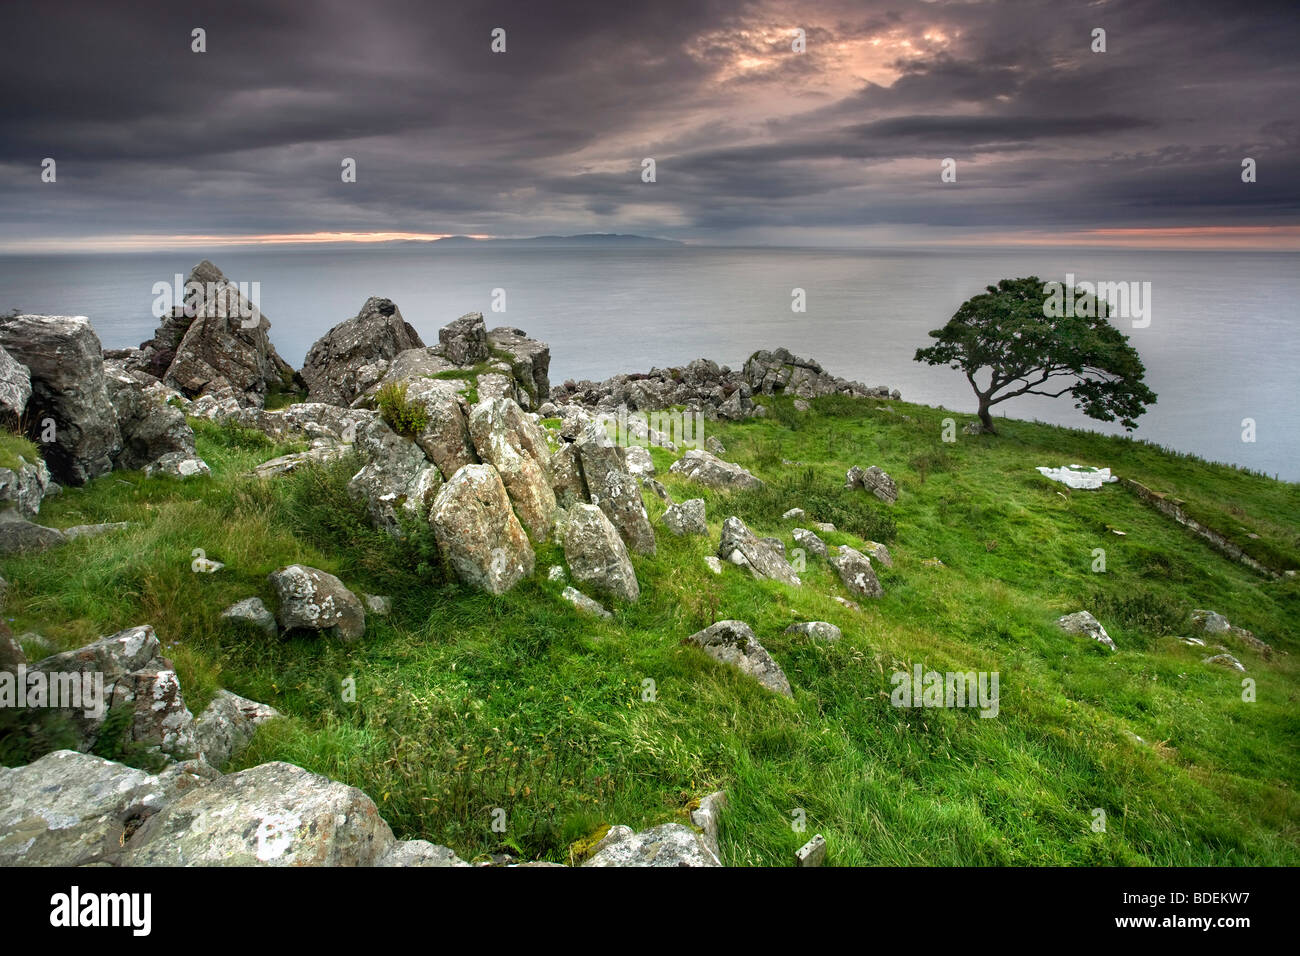 Murlough Bay in der Abenddämmerung, Co. Antrim, Nordirland. Stockbild